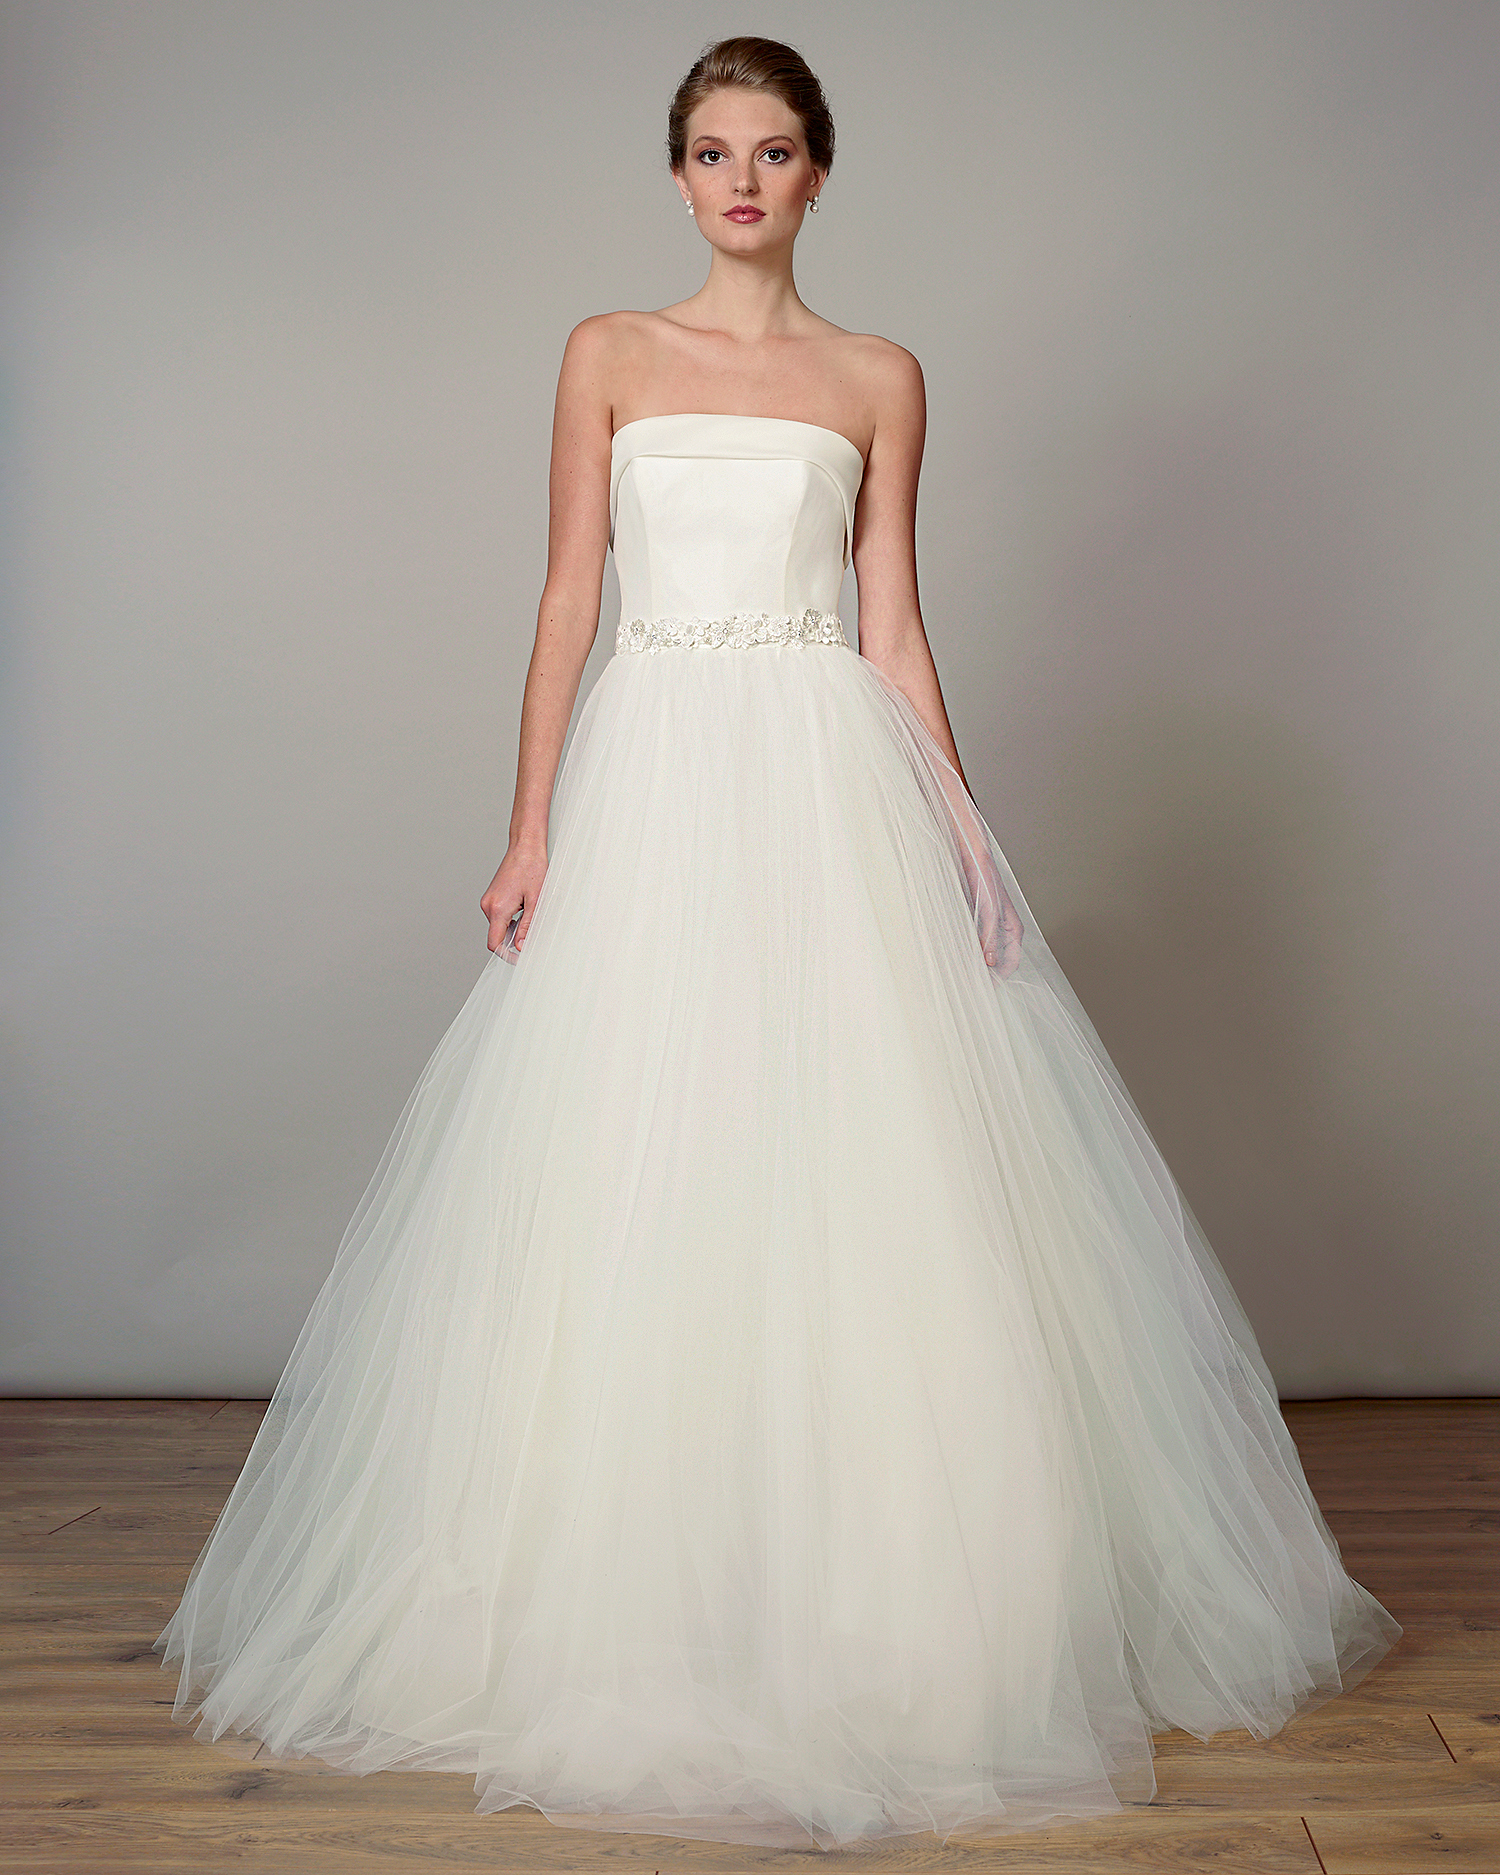 liancarlo wedding dress spring 2019 strapless belted ball gown